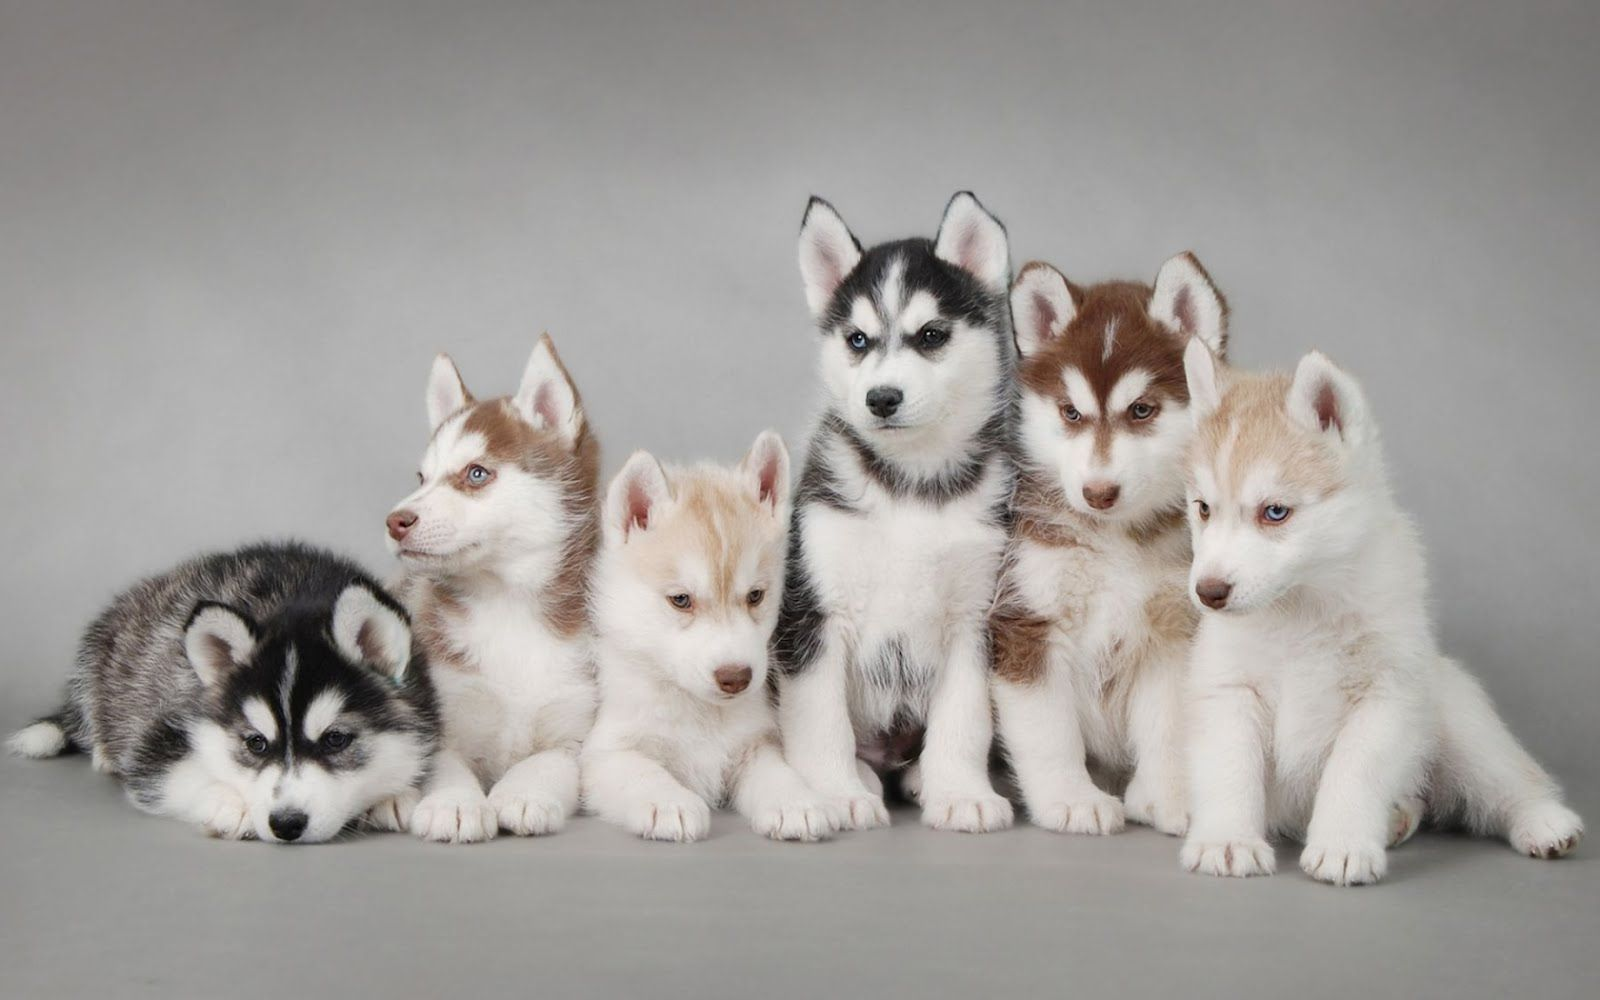 Husky Puppies Siberian Husky Puppies Hd Desktop Wallpaper